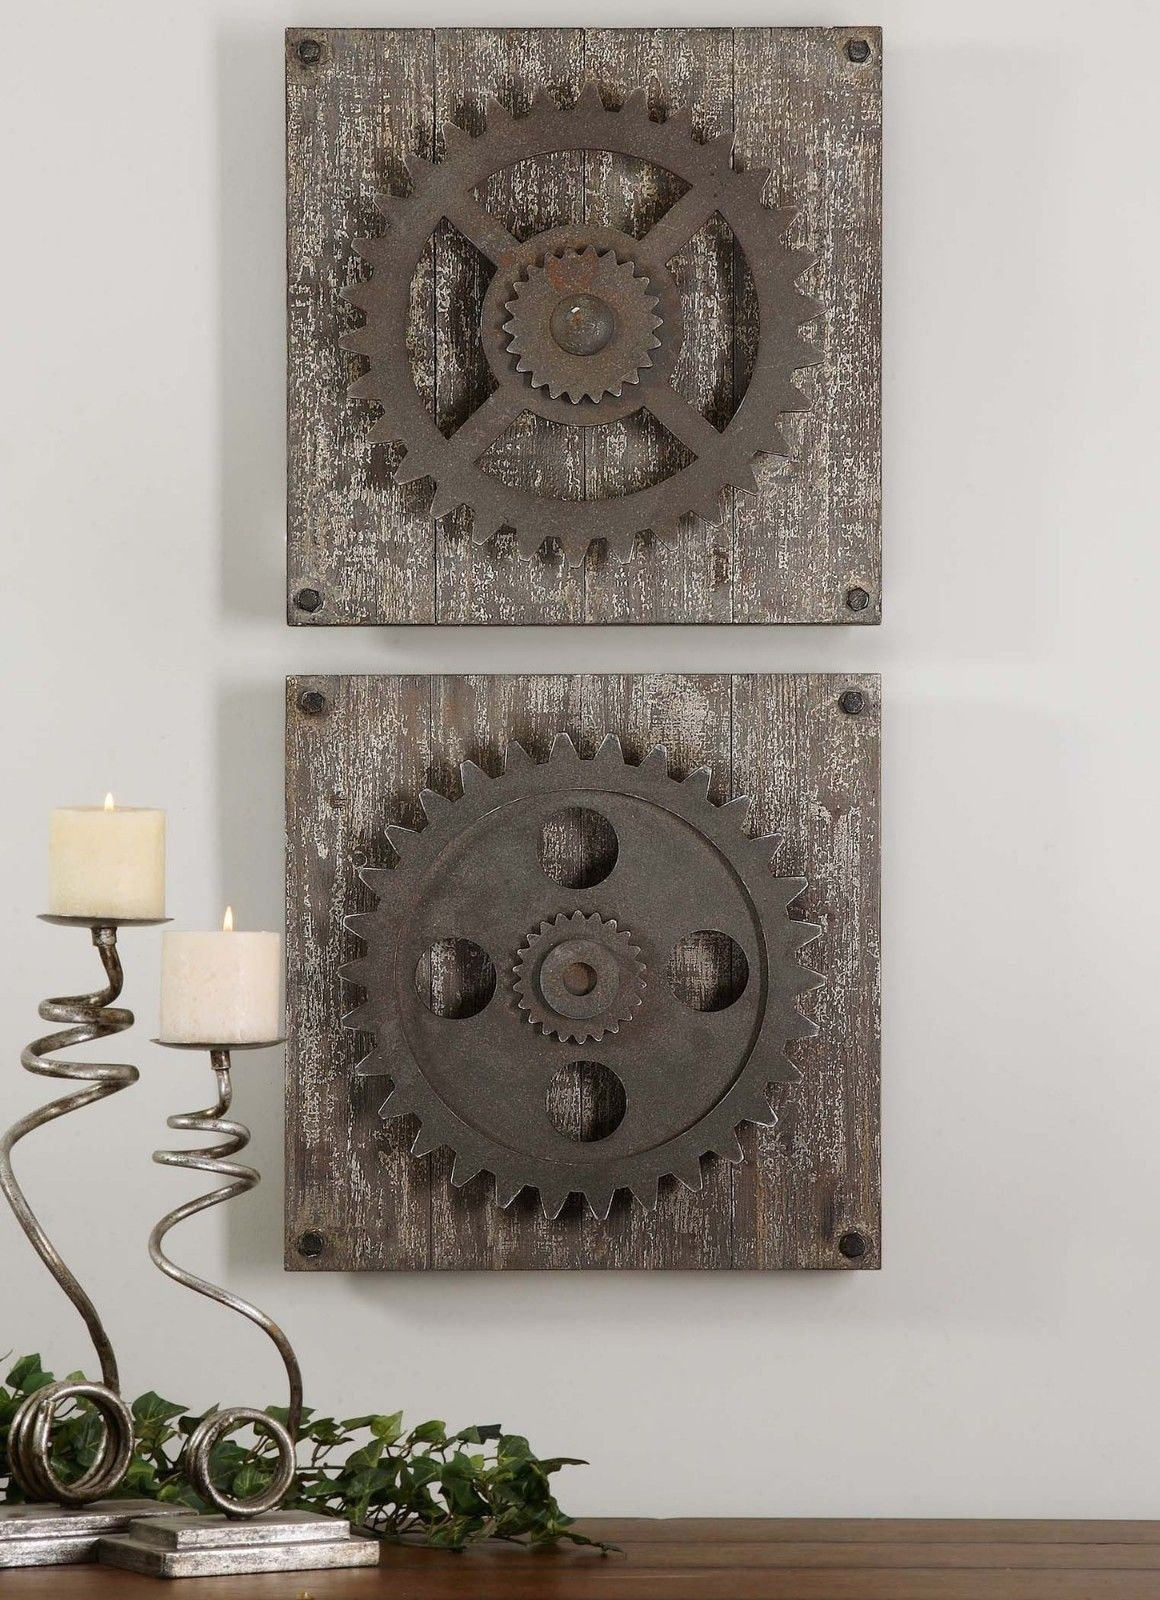 Urban Industrial Loft Steampunk Decor Rusty Gears Cogs 3D Wall Art Throughout Recent Art Wall Decor (View 16 of 20)